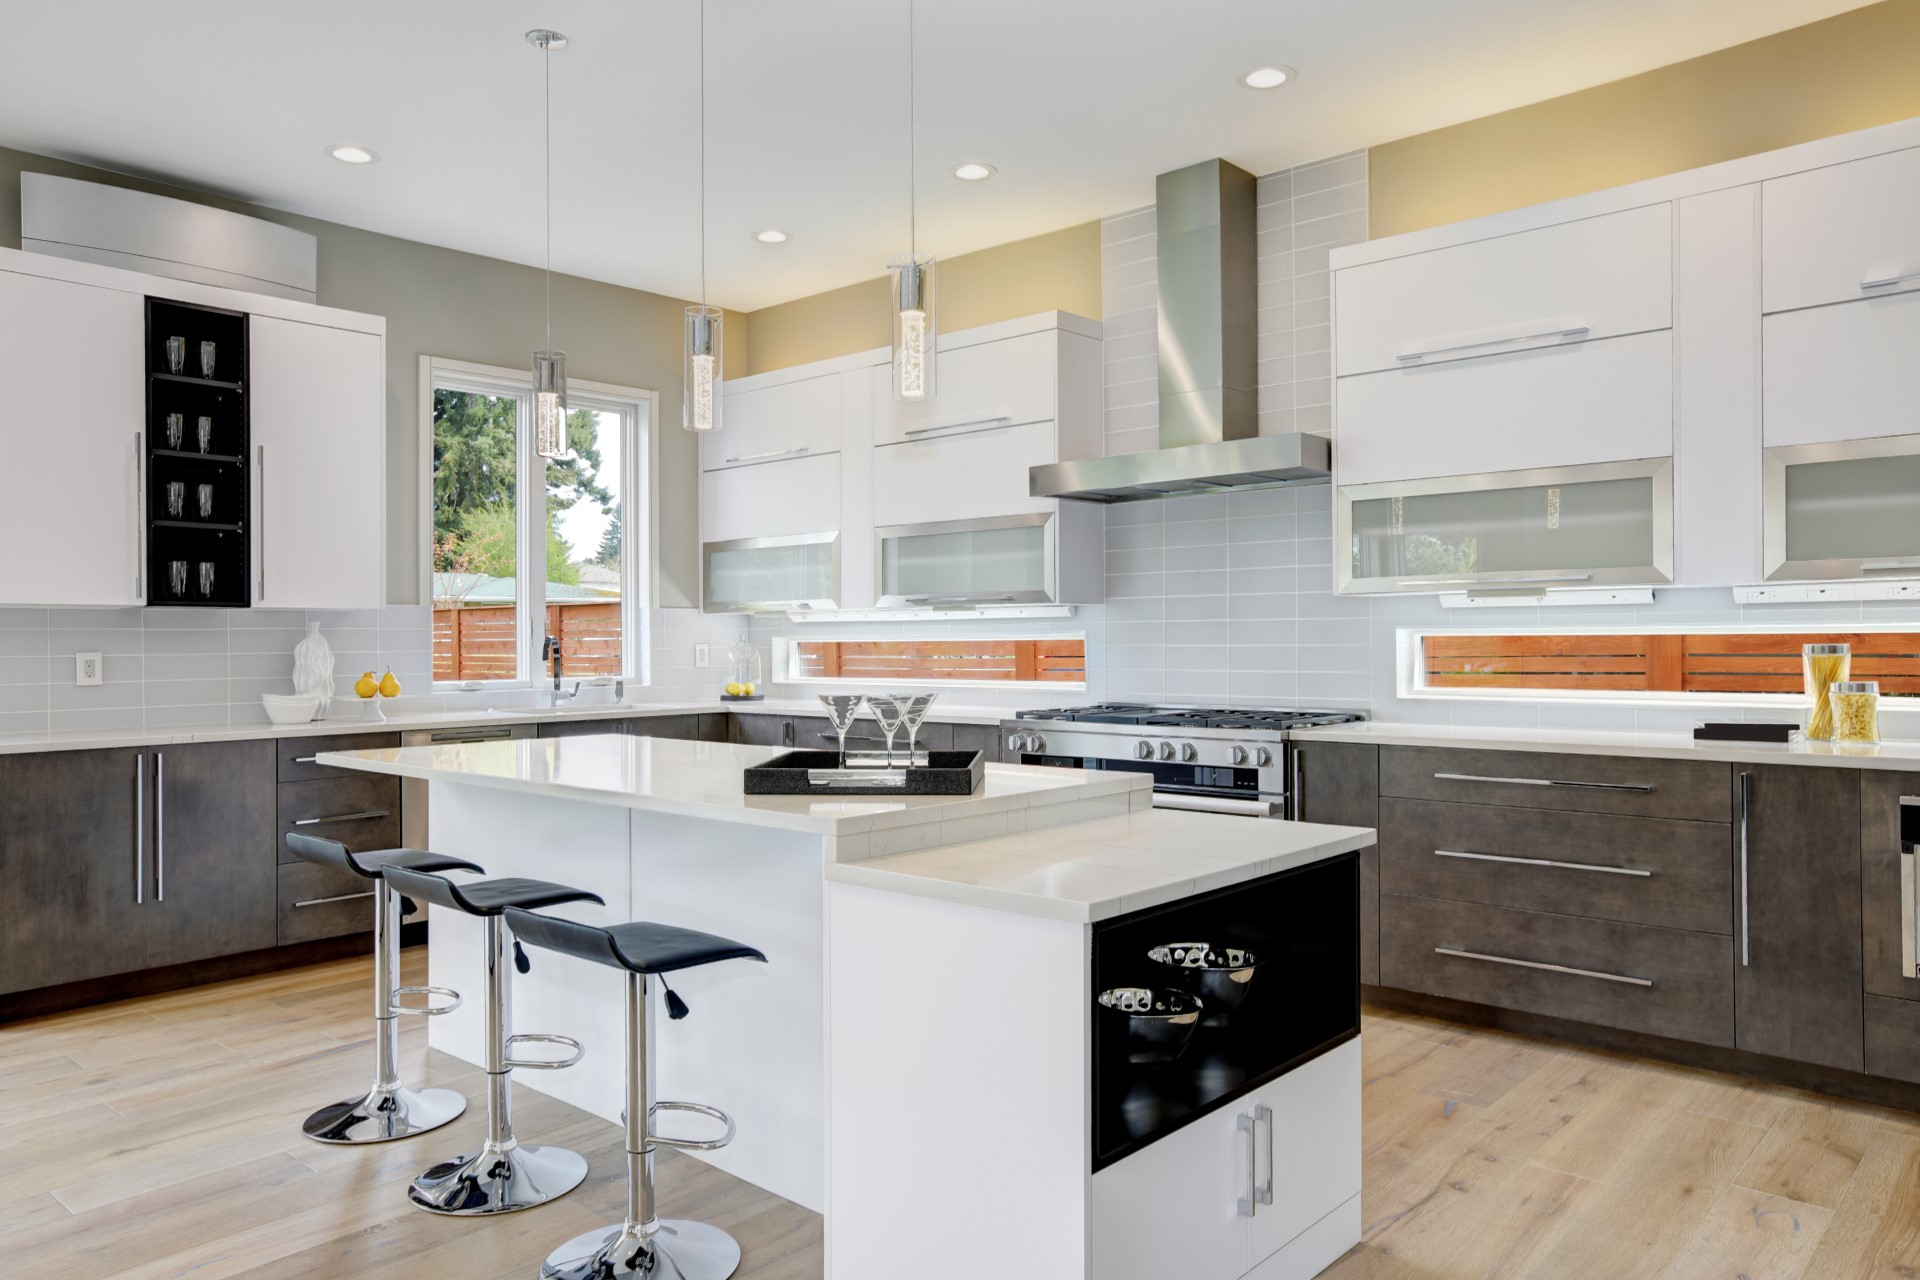 Adding champagne pendant lights is a clean way to polish out your kitchen. There are probably one of the most universal light fixtures that is bound to fit within any style. This contemporary kitchen is especially unique because of the see-through backsplash under the countertops which helps provide a spacious atmosphere.